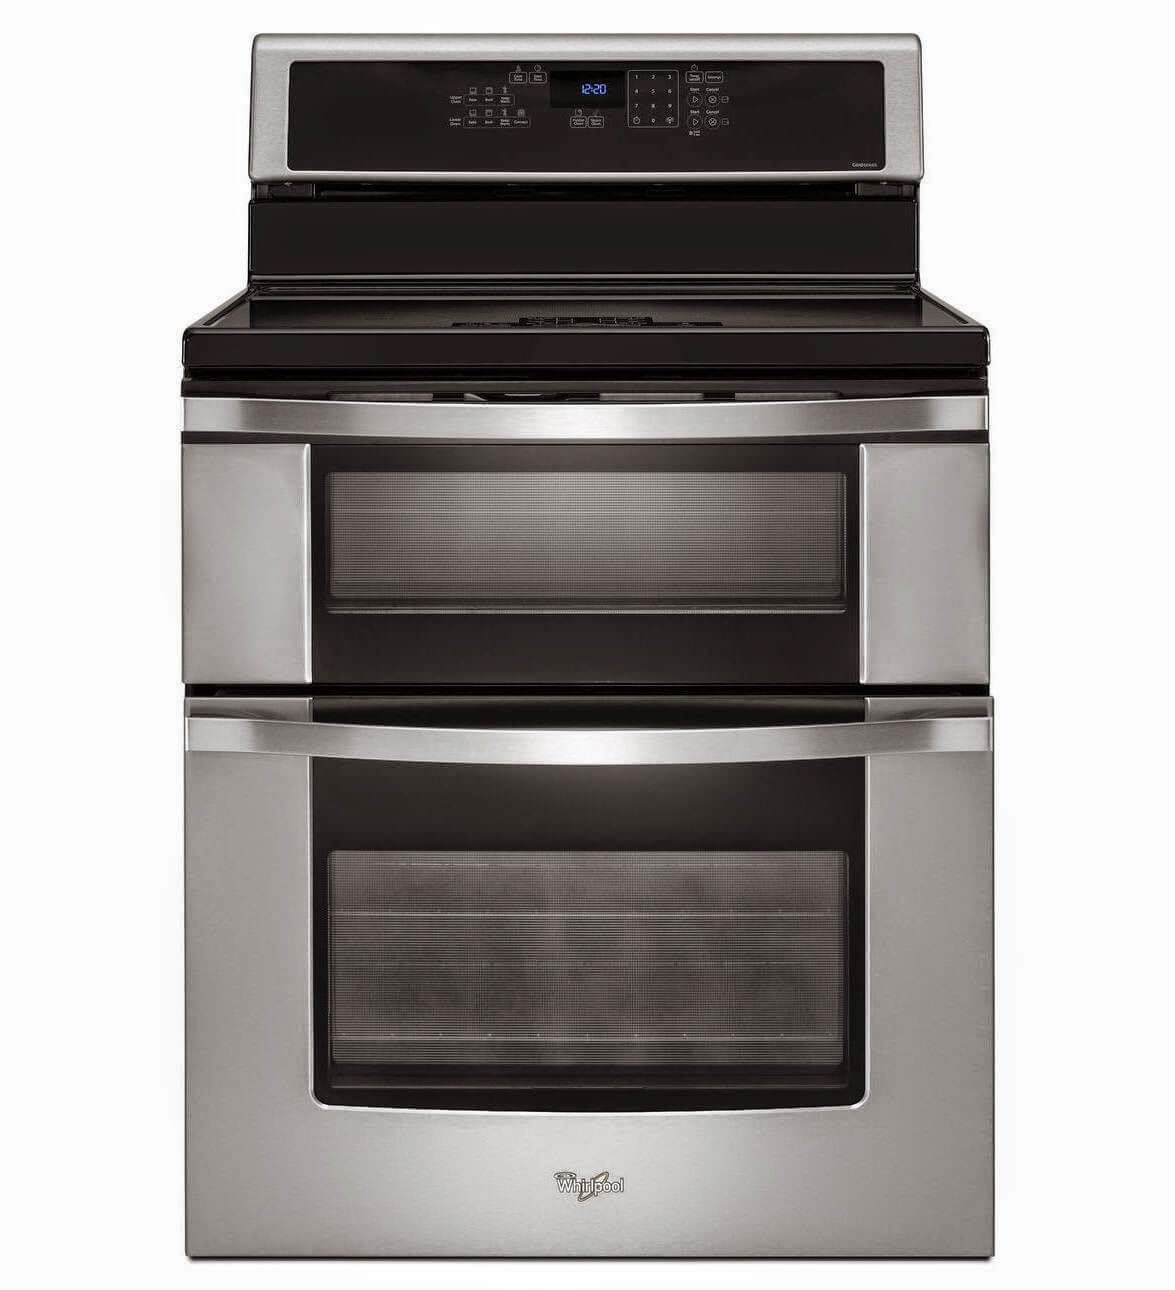 Top 11 Induction Cooking Ranges For 2015